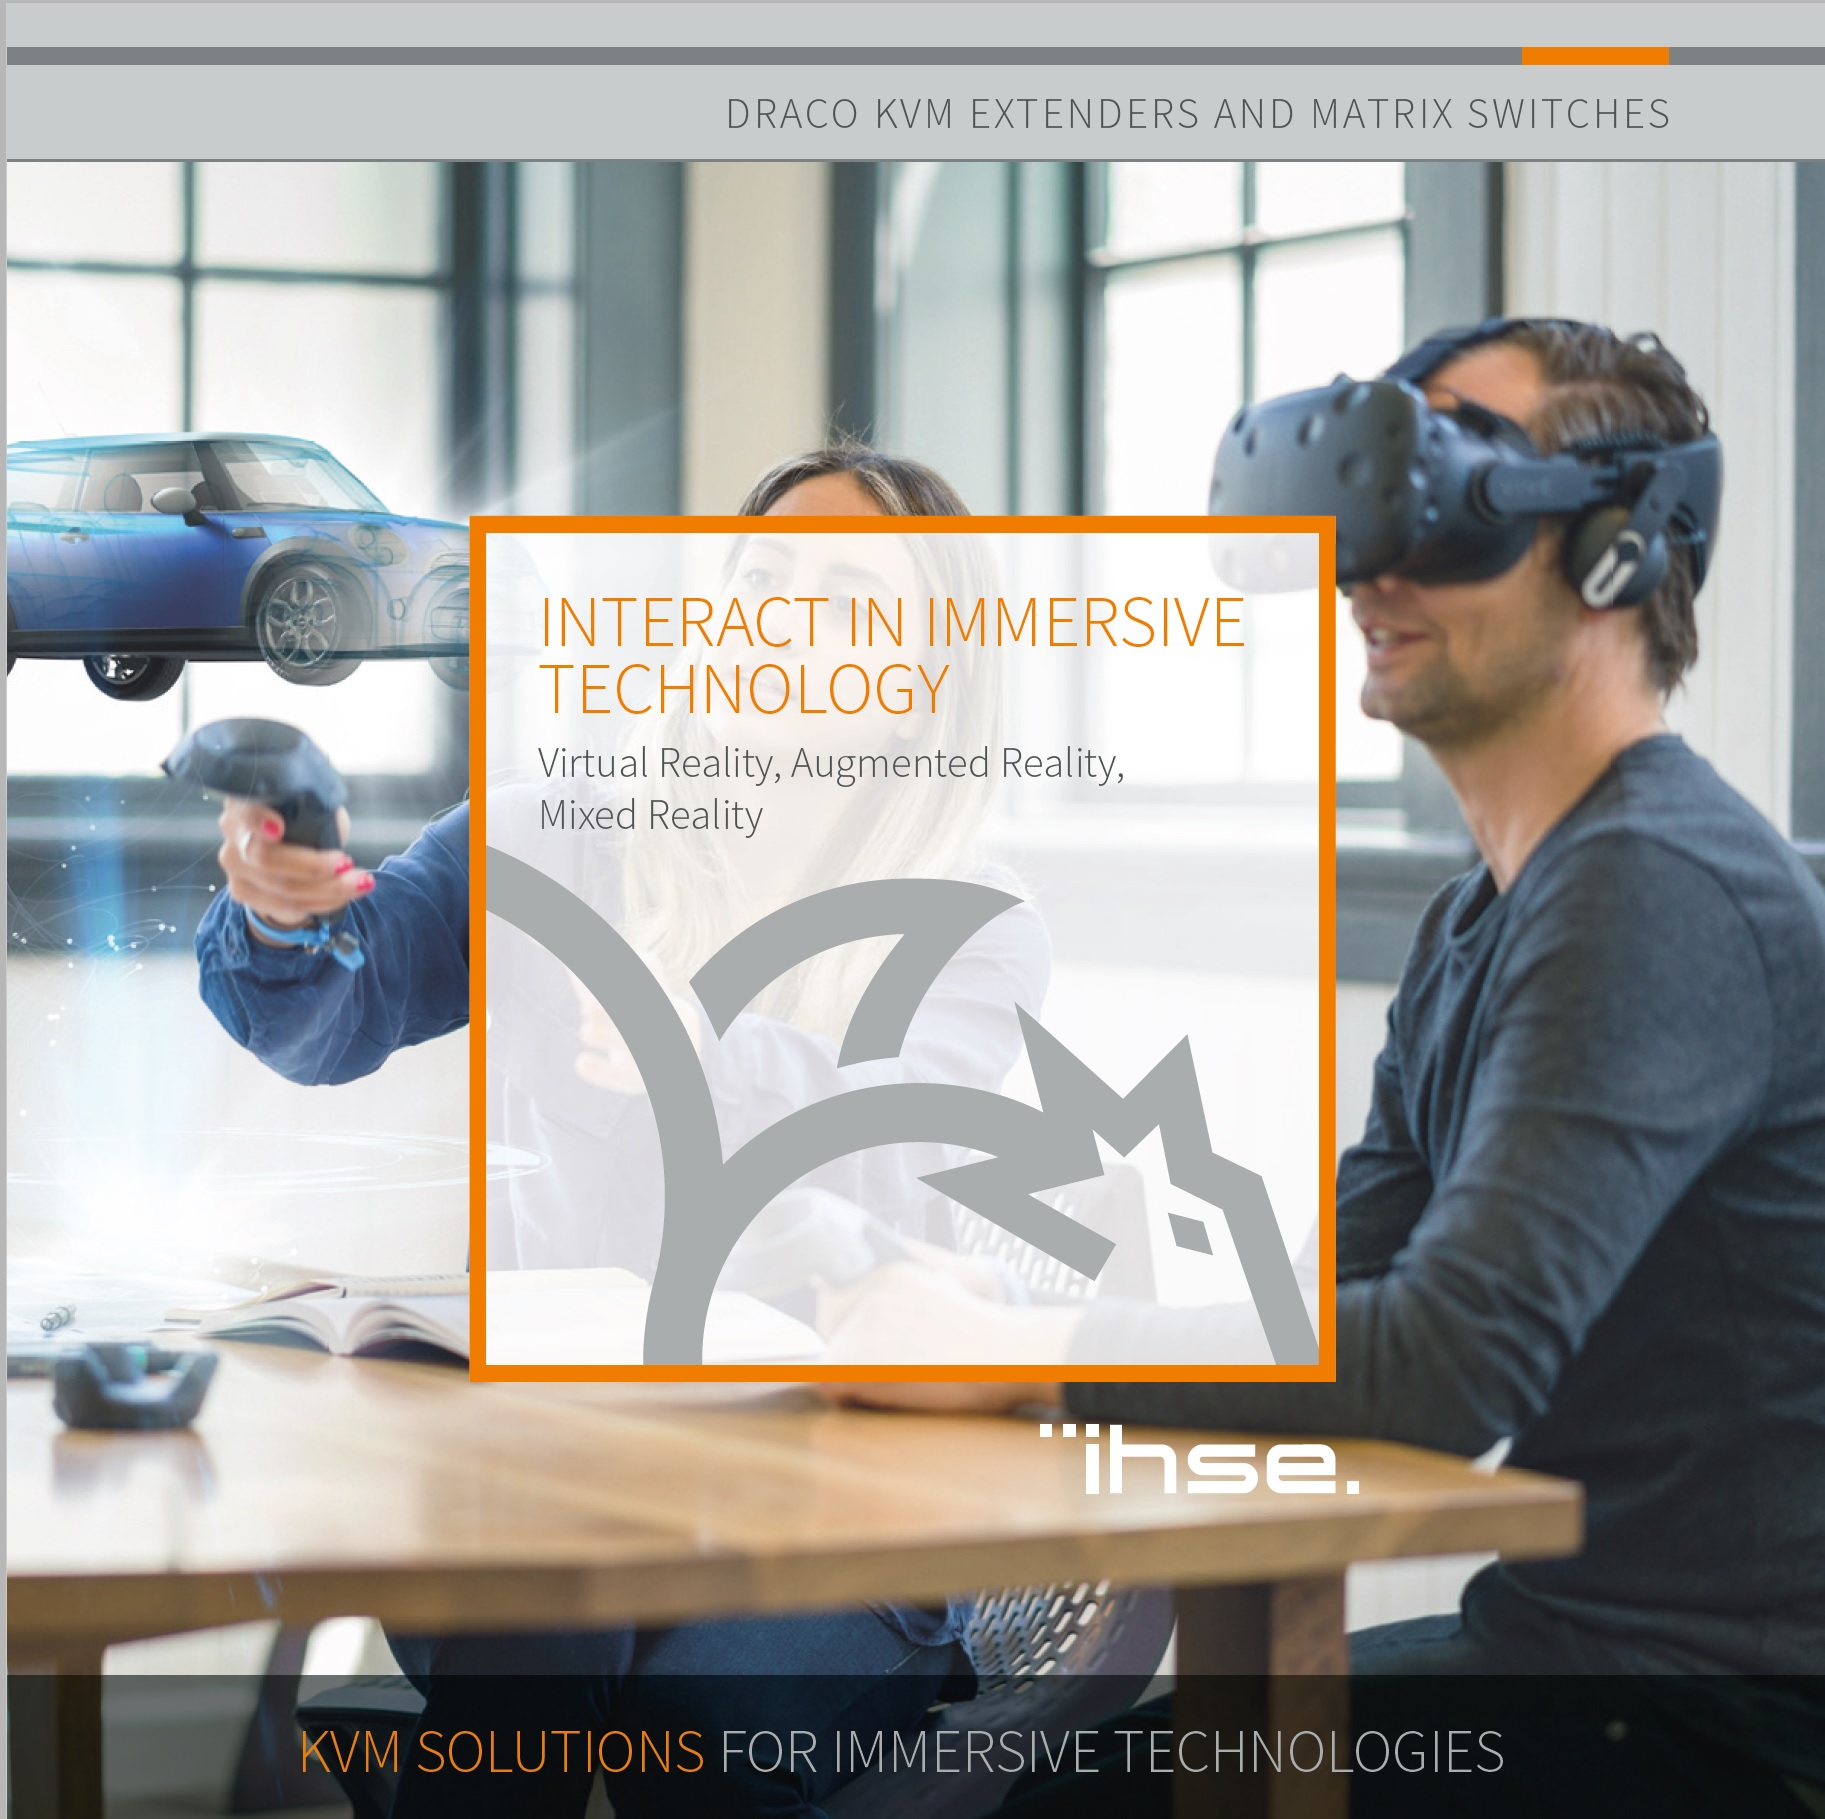 IHSE KVM Solutions for Immersive Technologies / VR